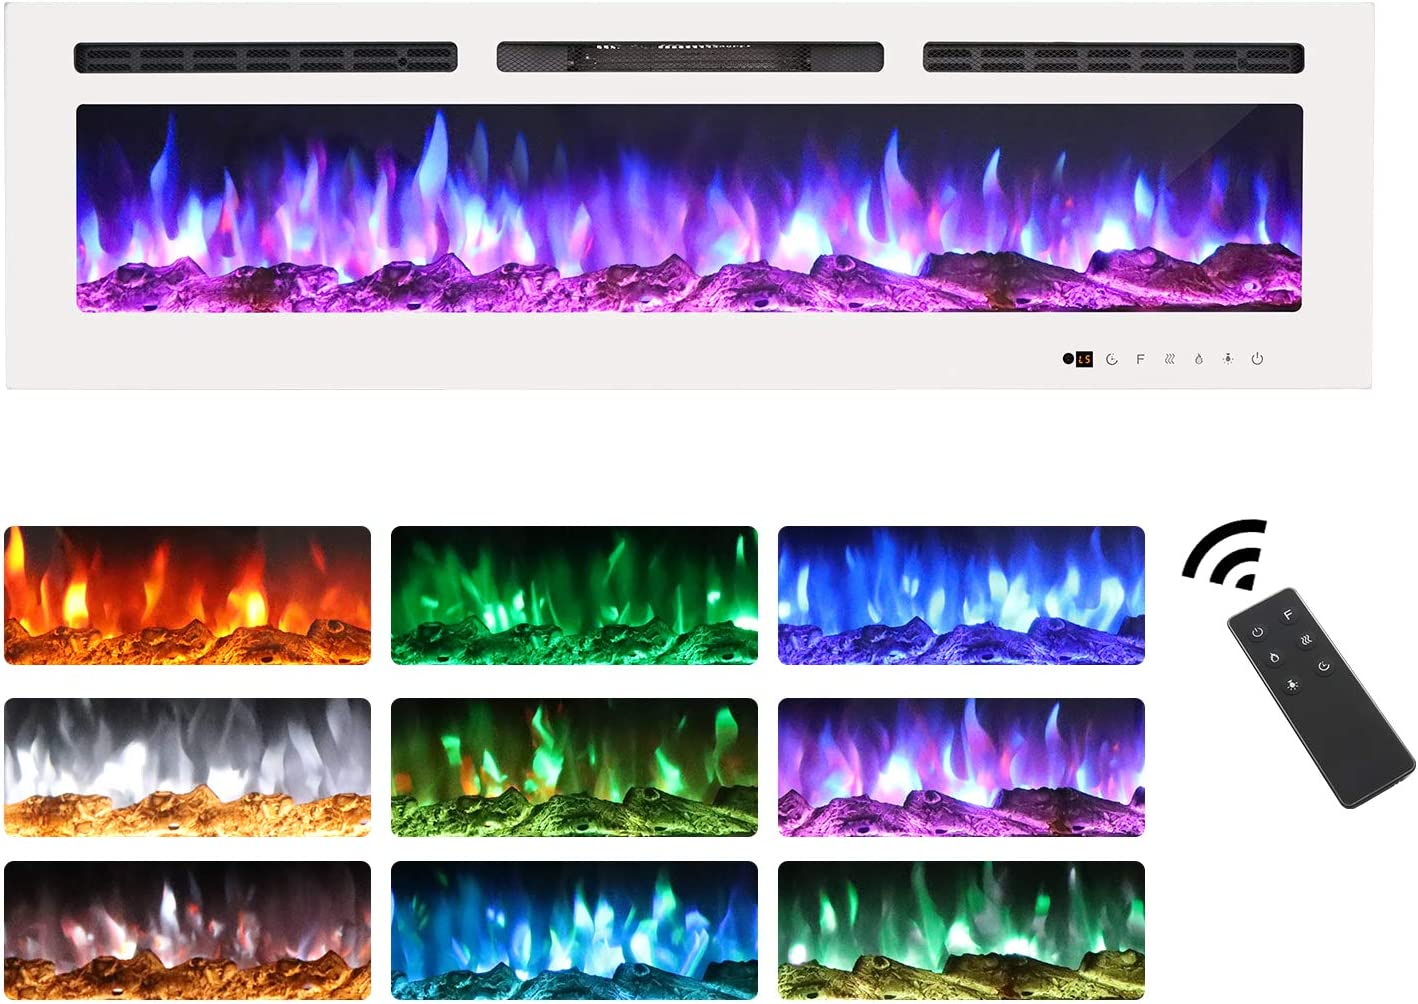 Homevibes 60 Inched Recesses Electric Fireplace Insert /& Wall Mounted Electric Fireplace Heater Faux Fireplace Remote Control /& Touch Screen 750W//1500W Low Noise